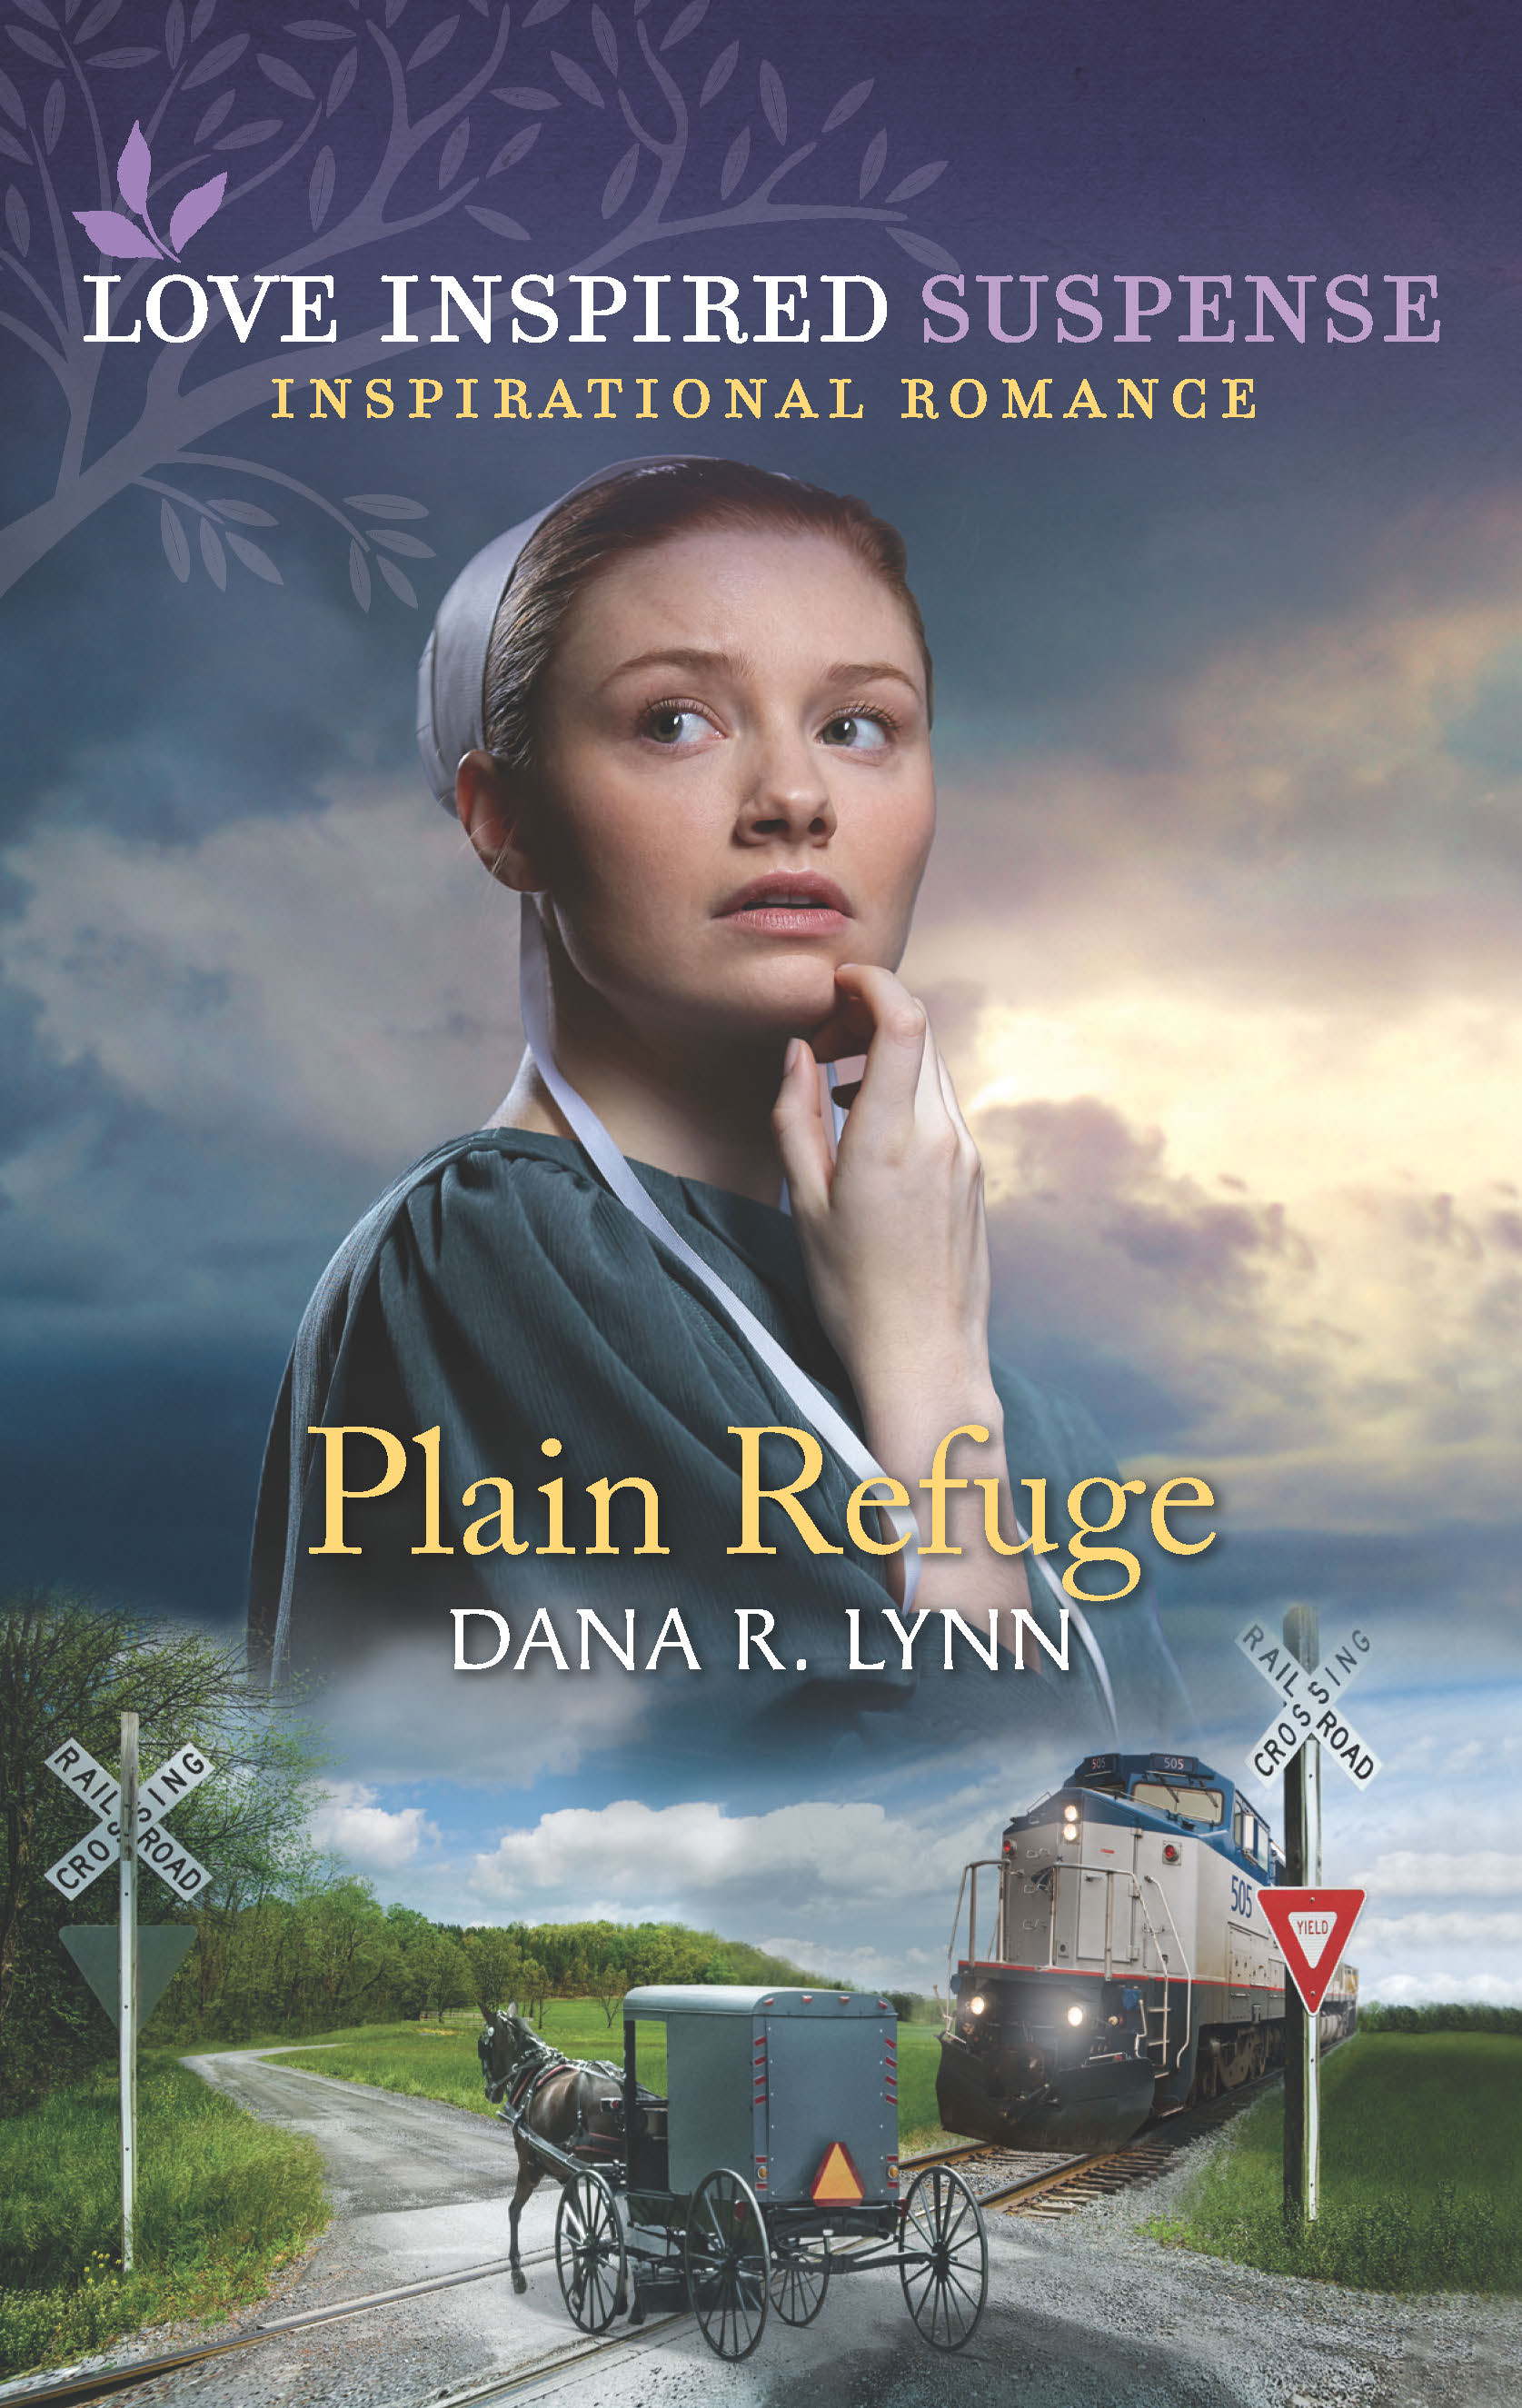 Plain Refuge by Dana R. Lynn